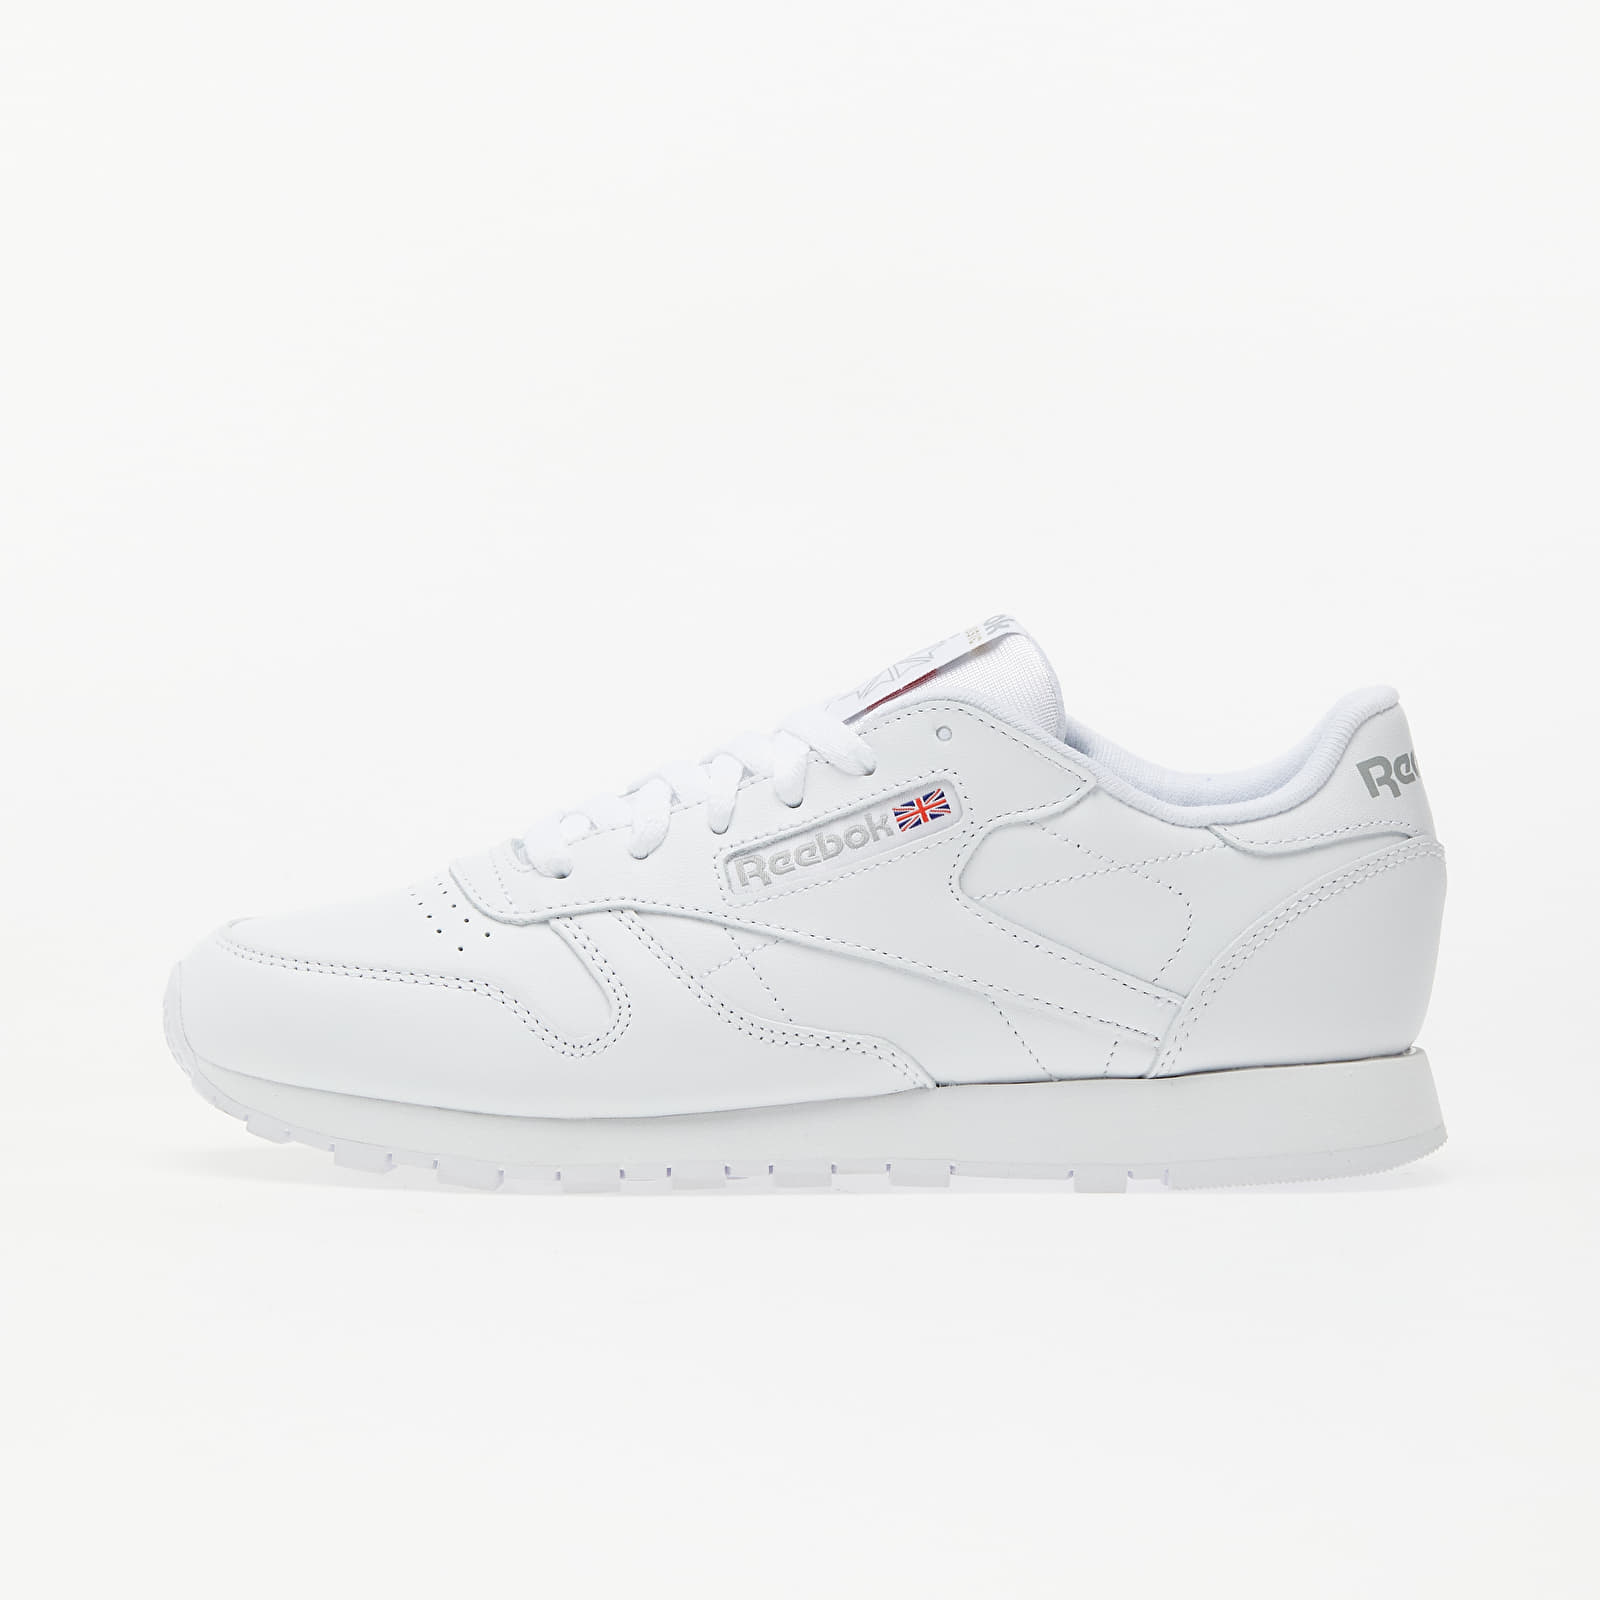 Women's shoes Reebok Classic Leather White